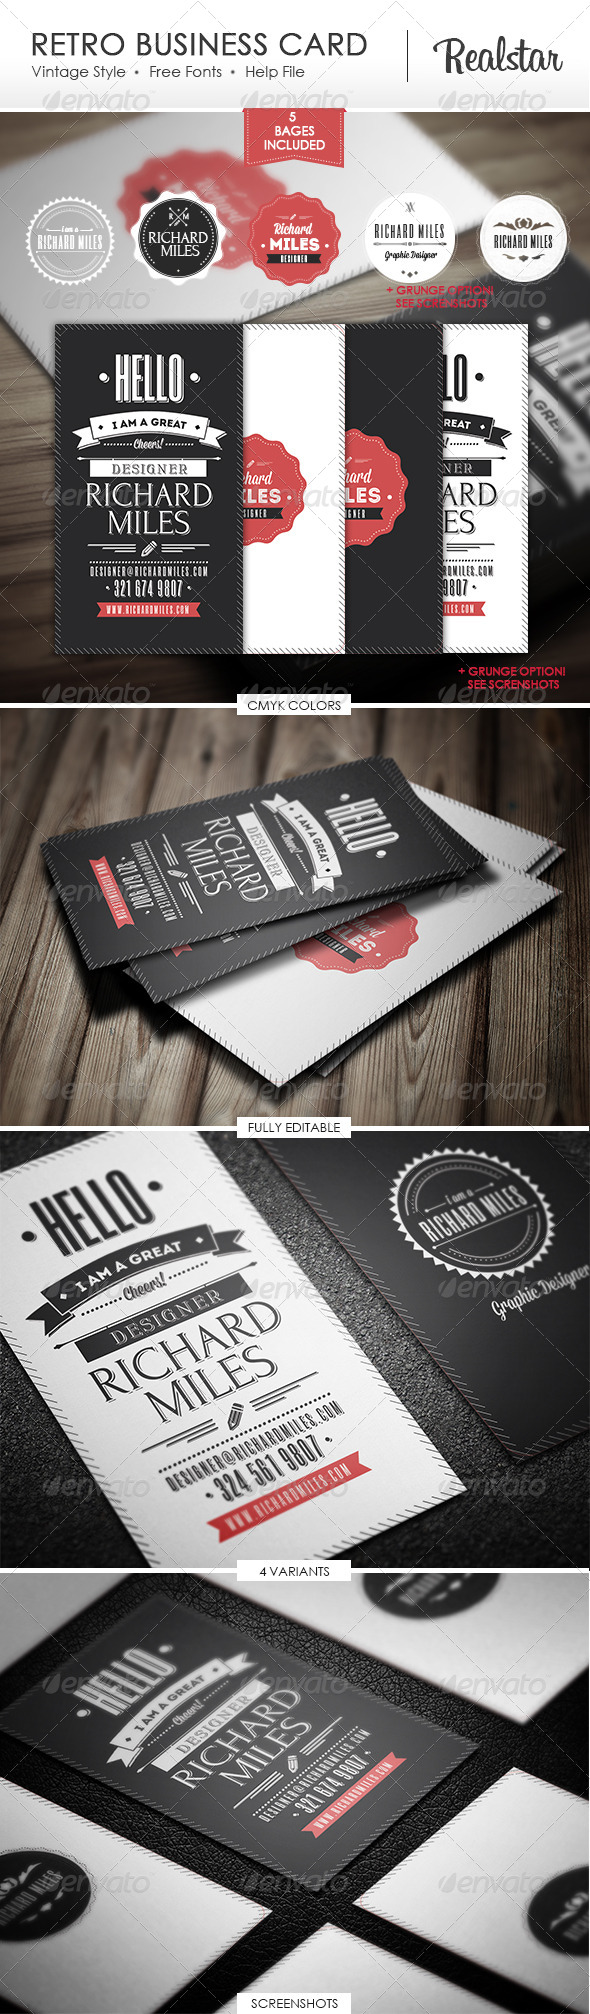 GraphicRiver Retro Business Card 4703221